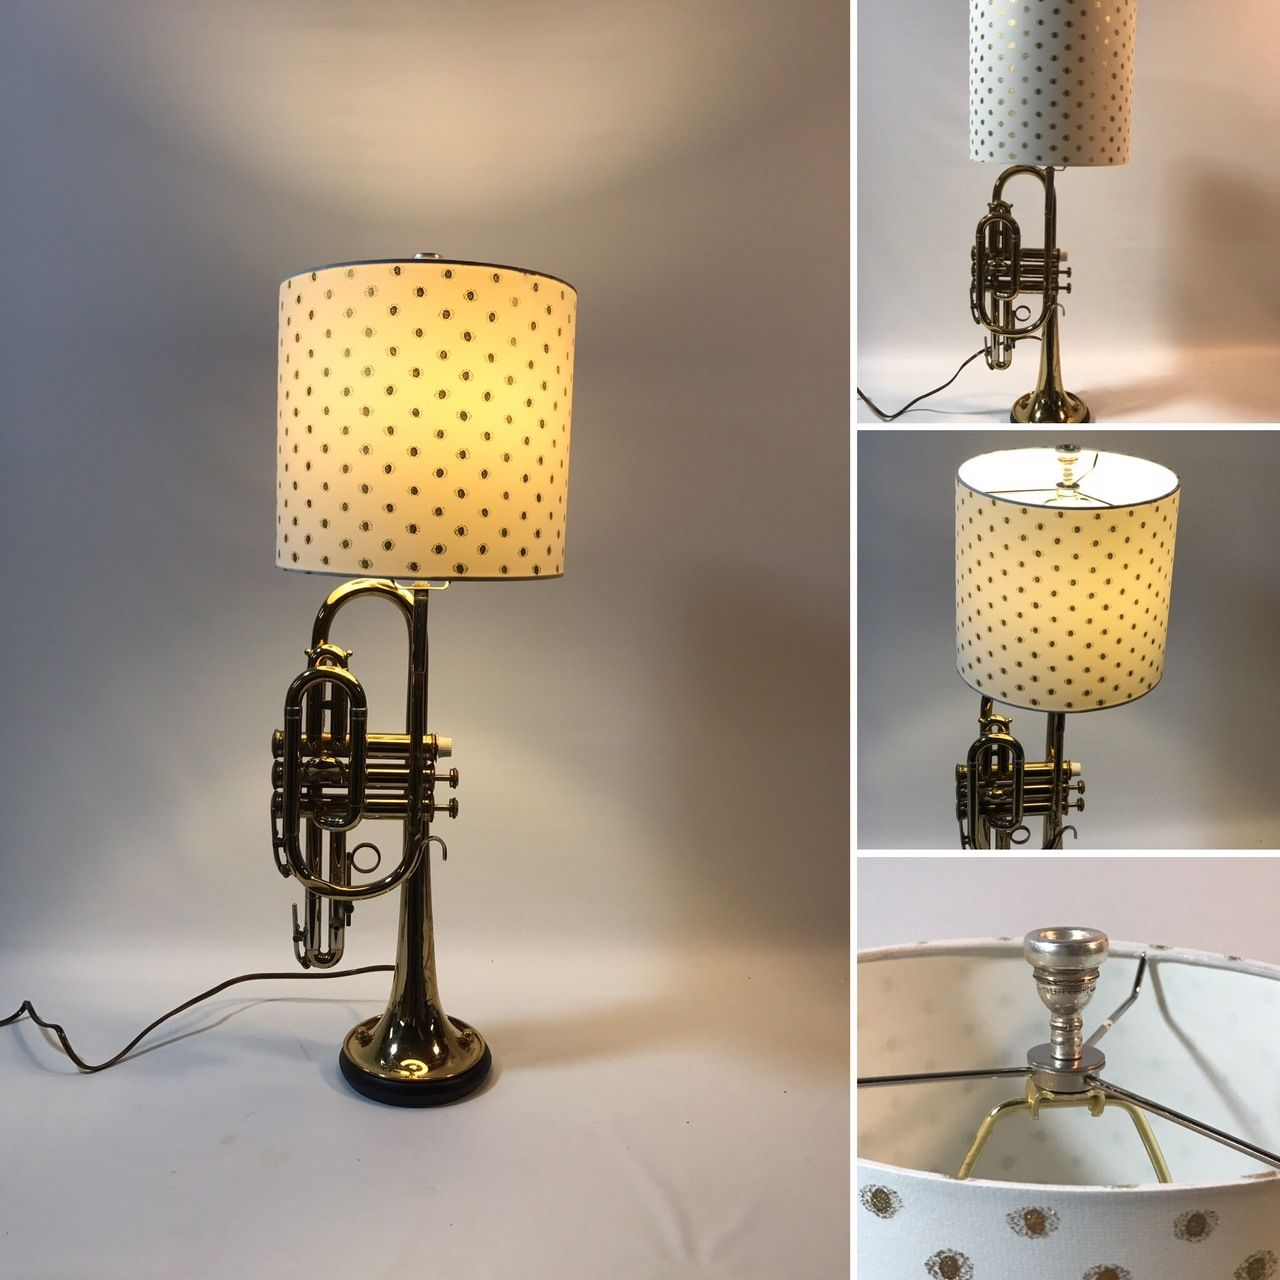 Trumpet Lamp From The Replace Trumpet Lamp Lamp Wall Lamp